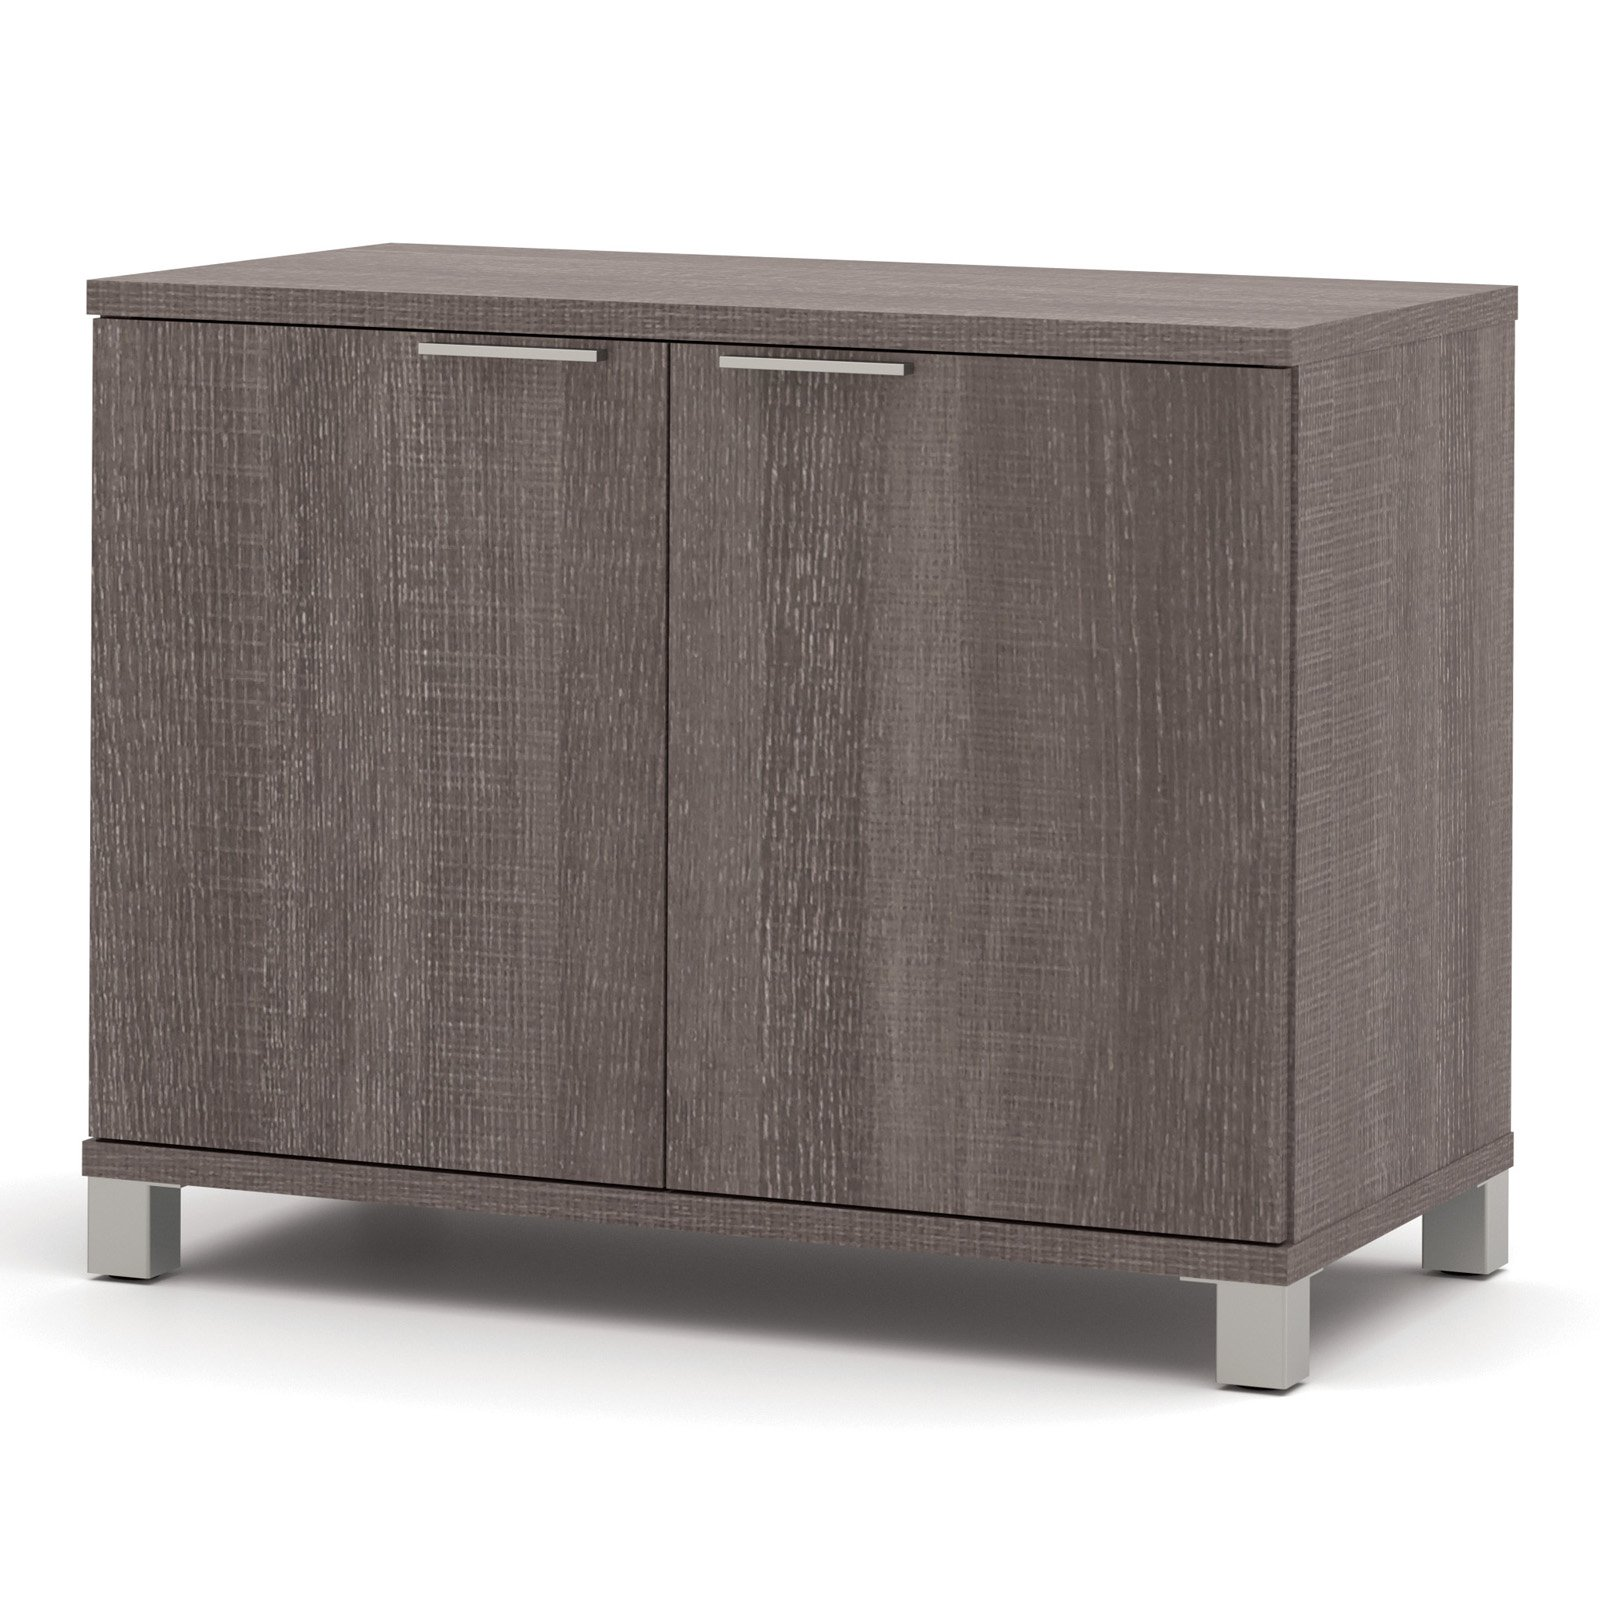 Bestar Pro-Linea 2-Door Storage Unit, Bark Grey